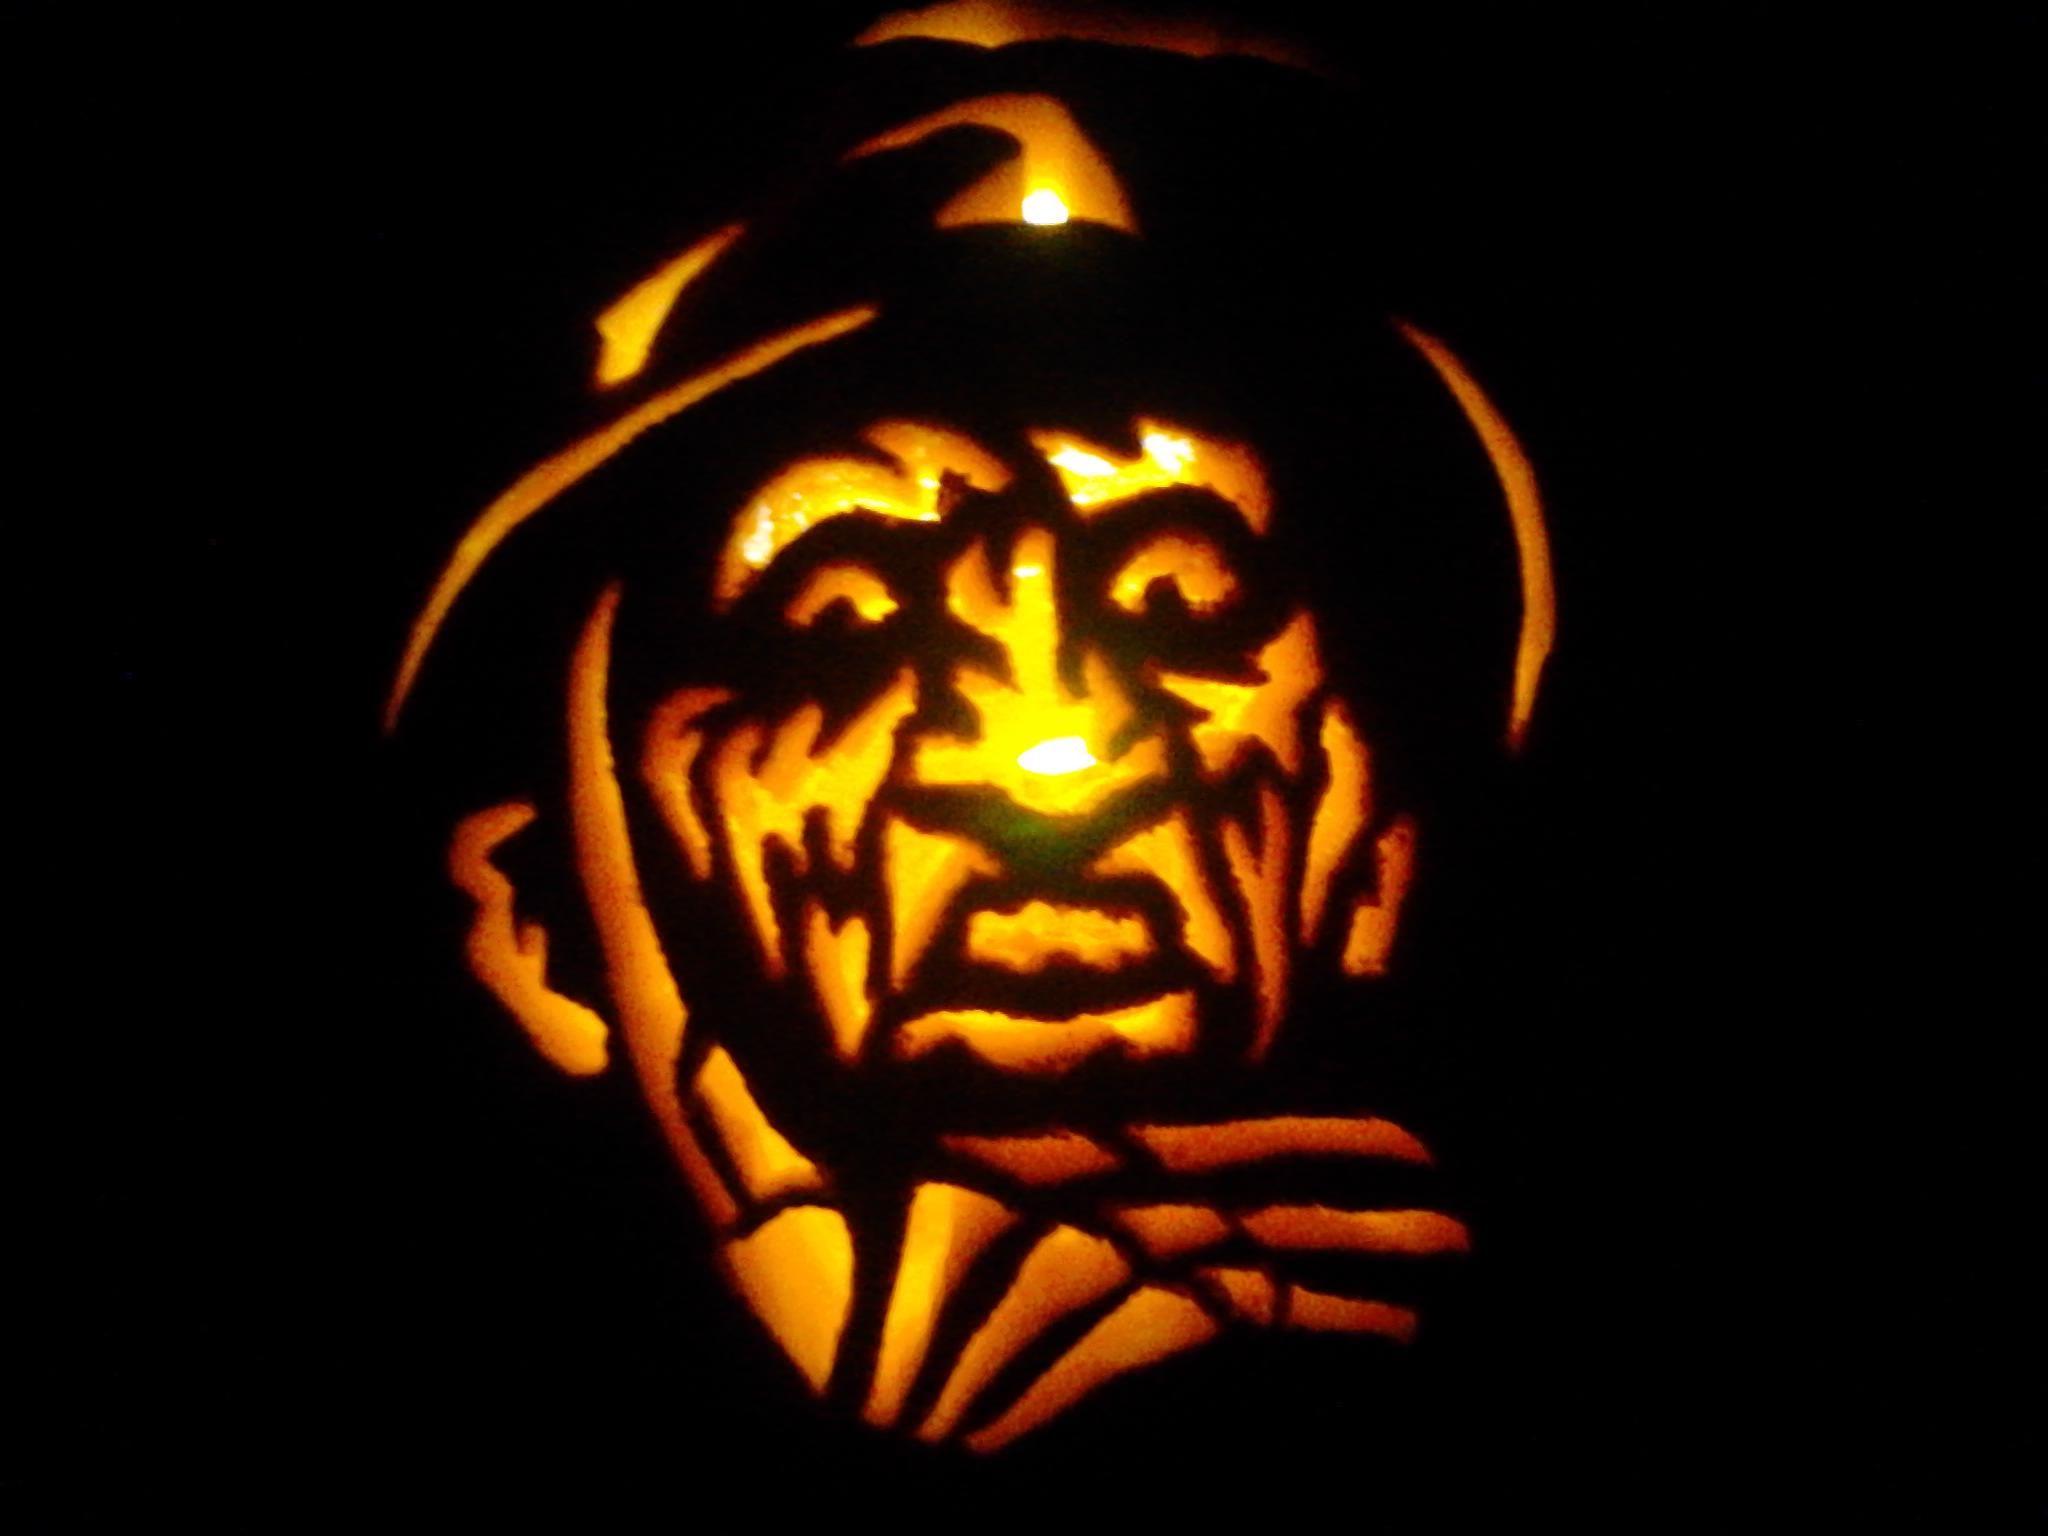 freddy kruger pumpkin carving by me pumpkin and